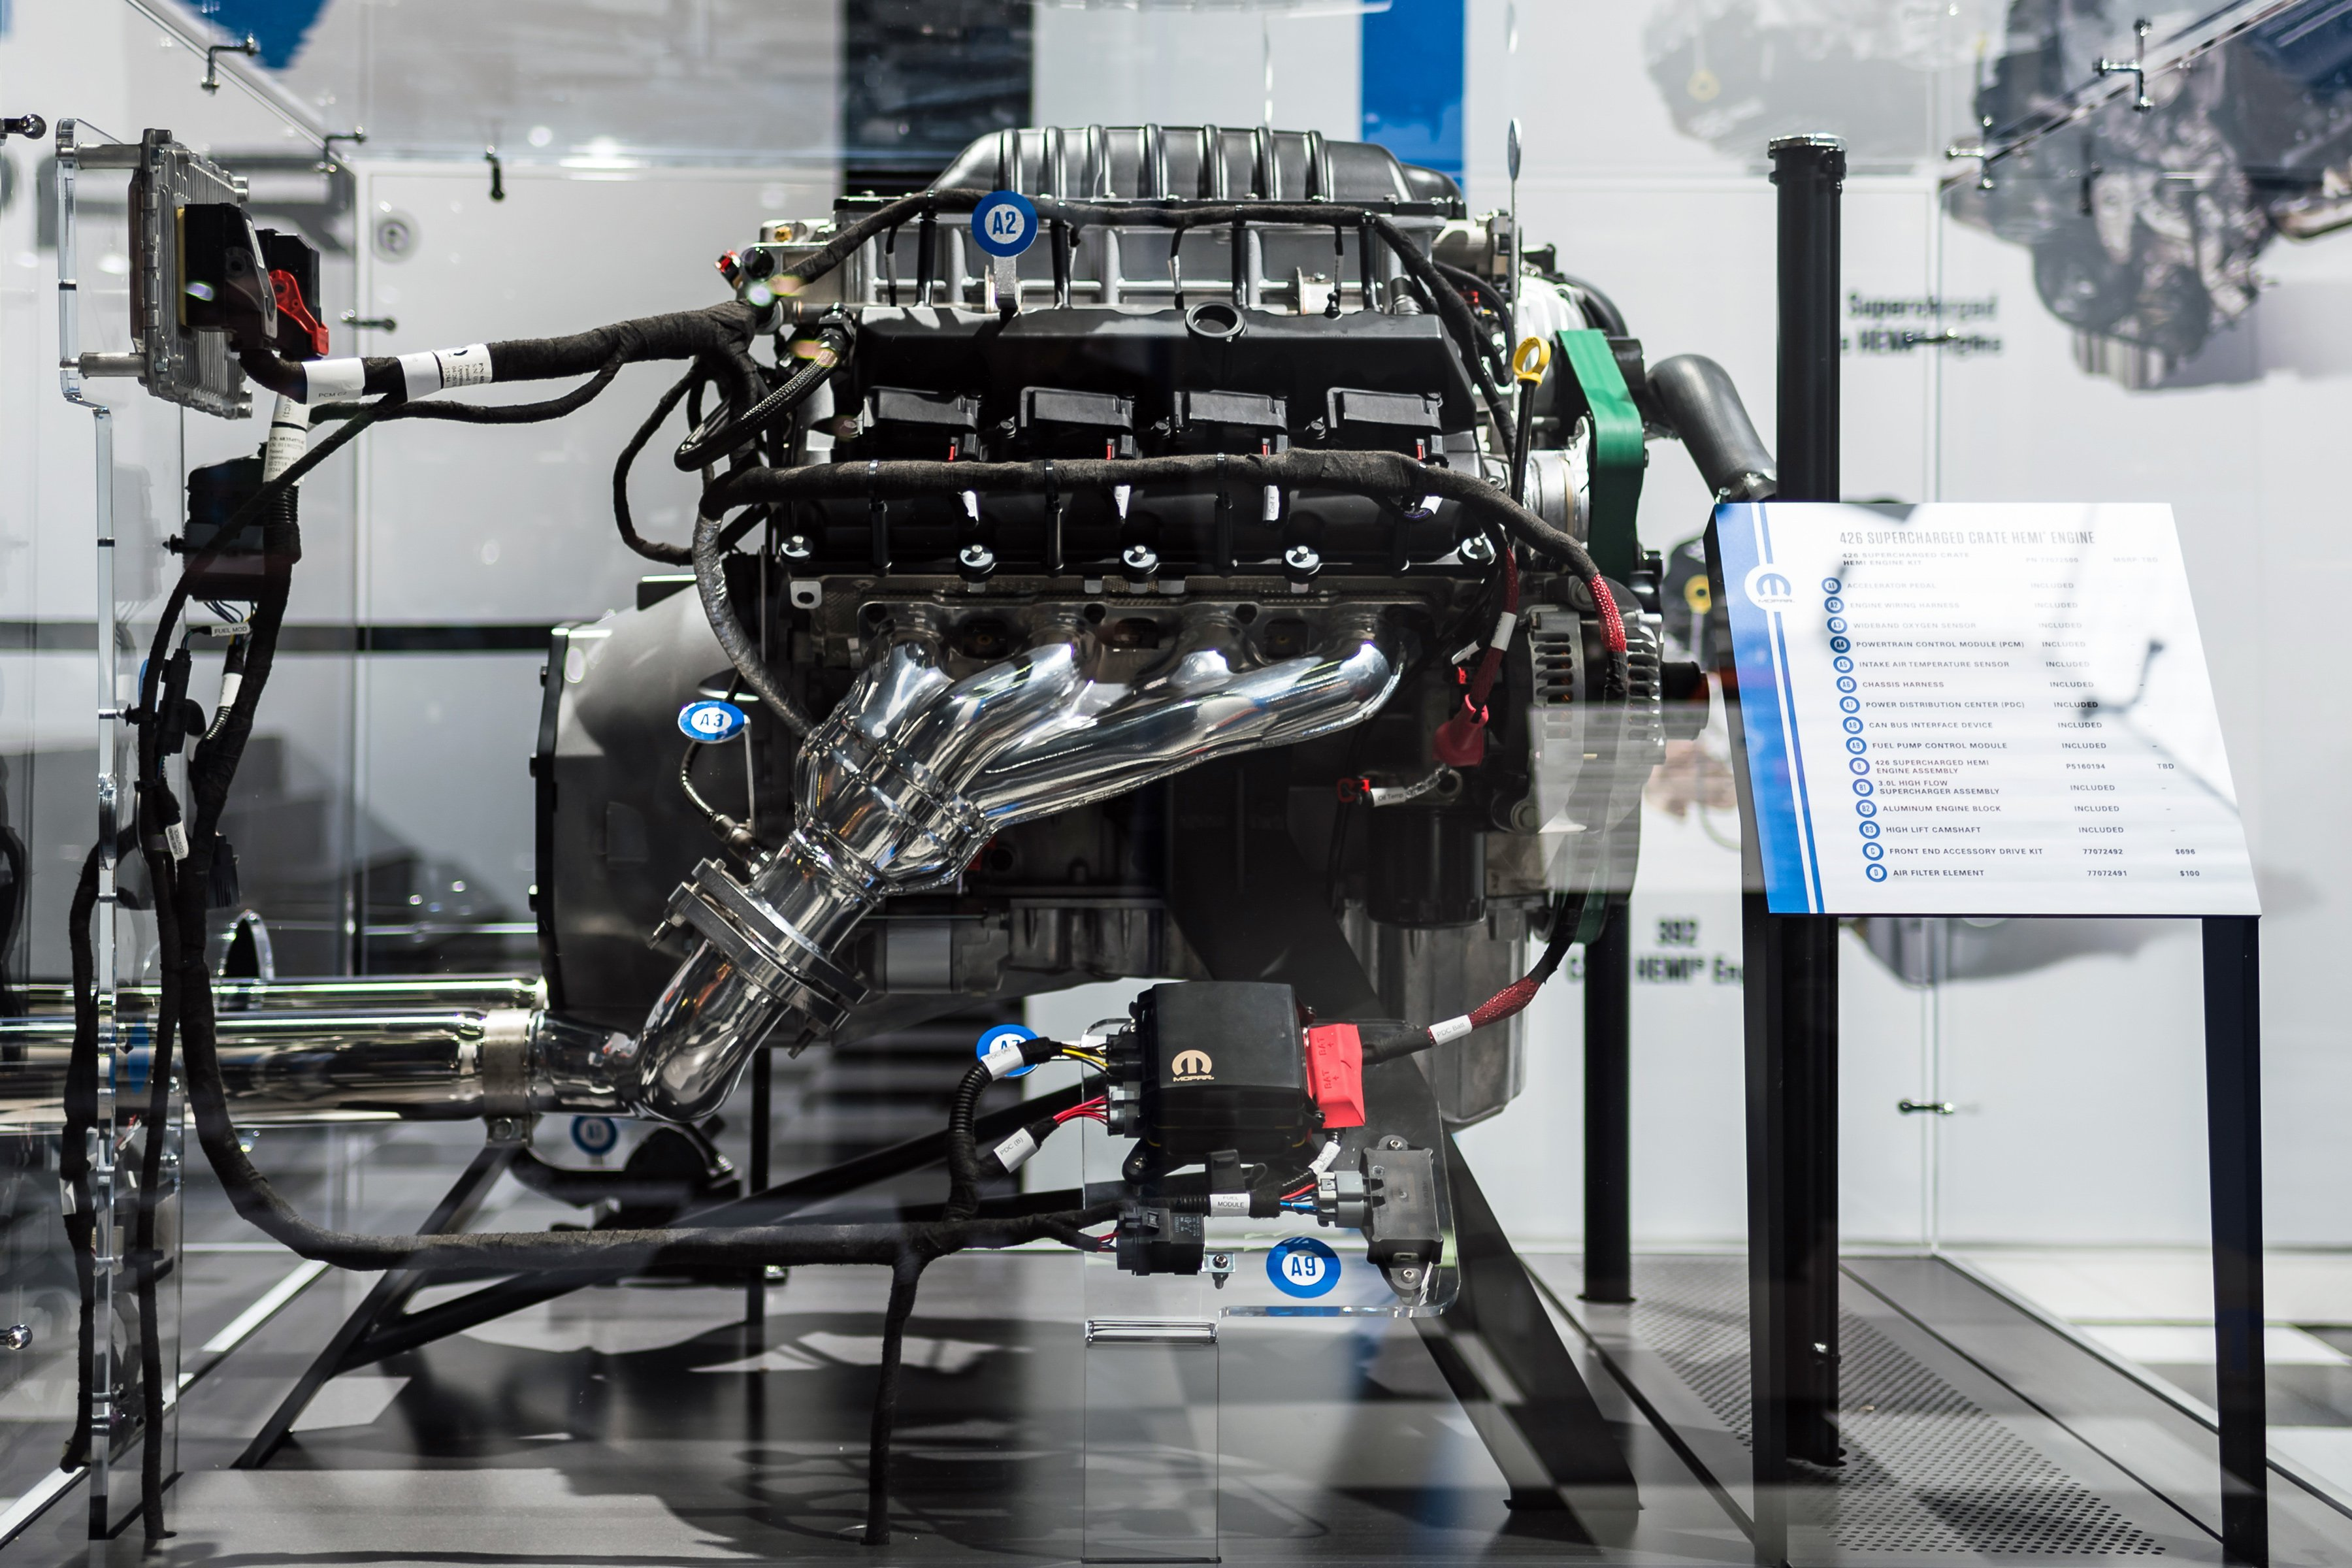 The Magnificent Mopar 413 and 426 Max Wedge Engines